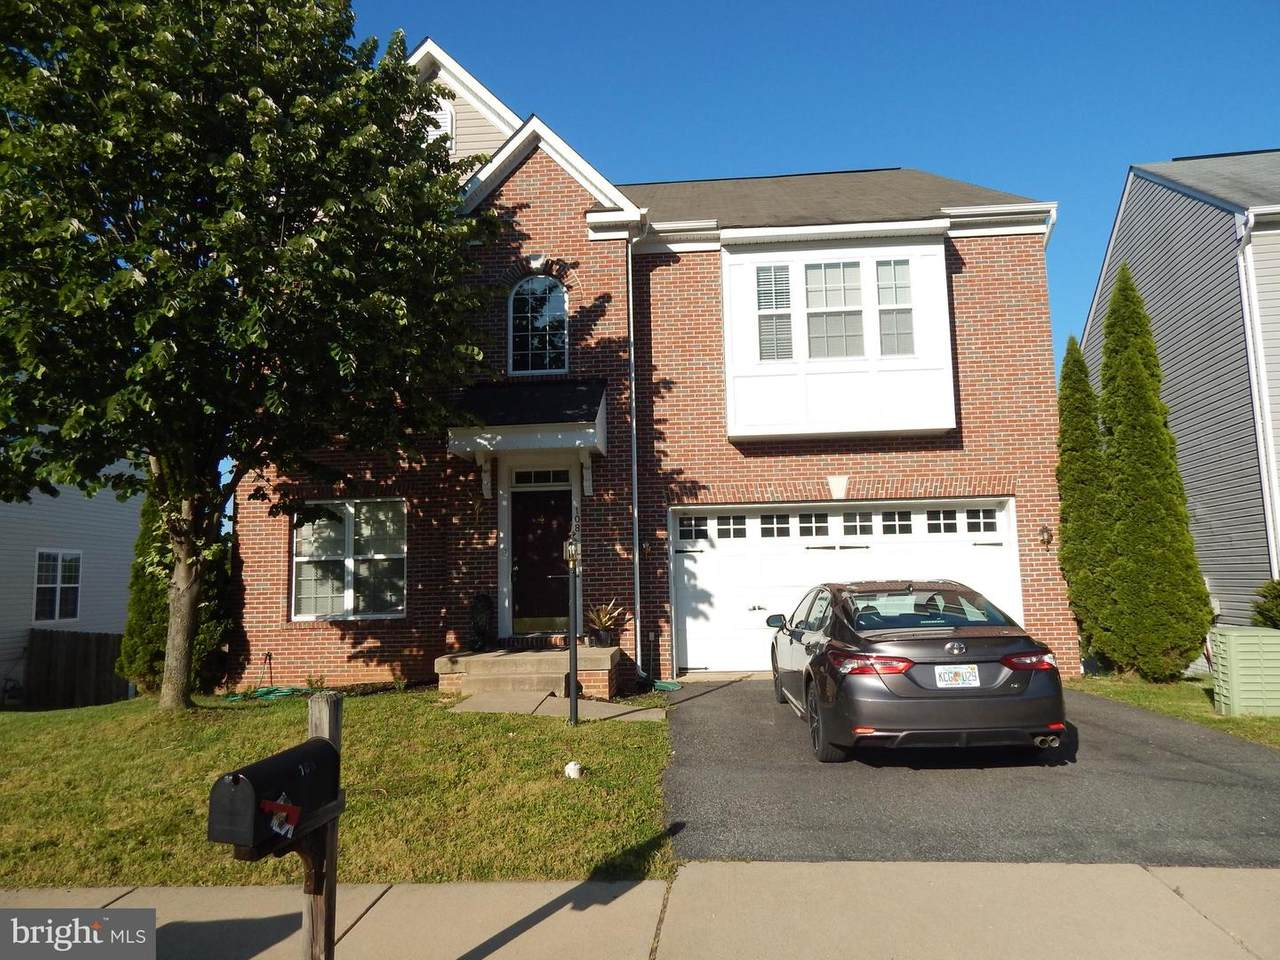 108 Carriage Hill Drive - Photo 1